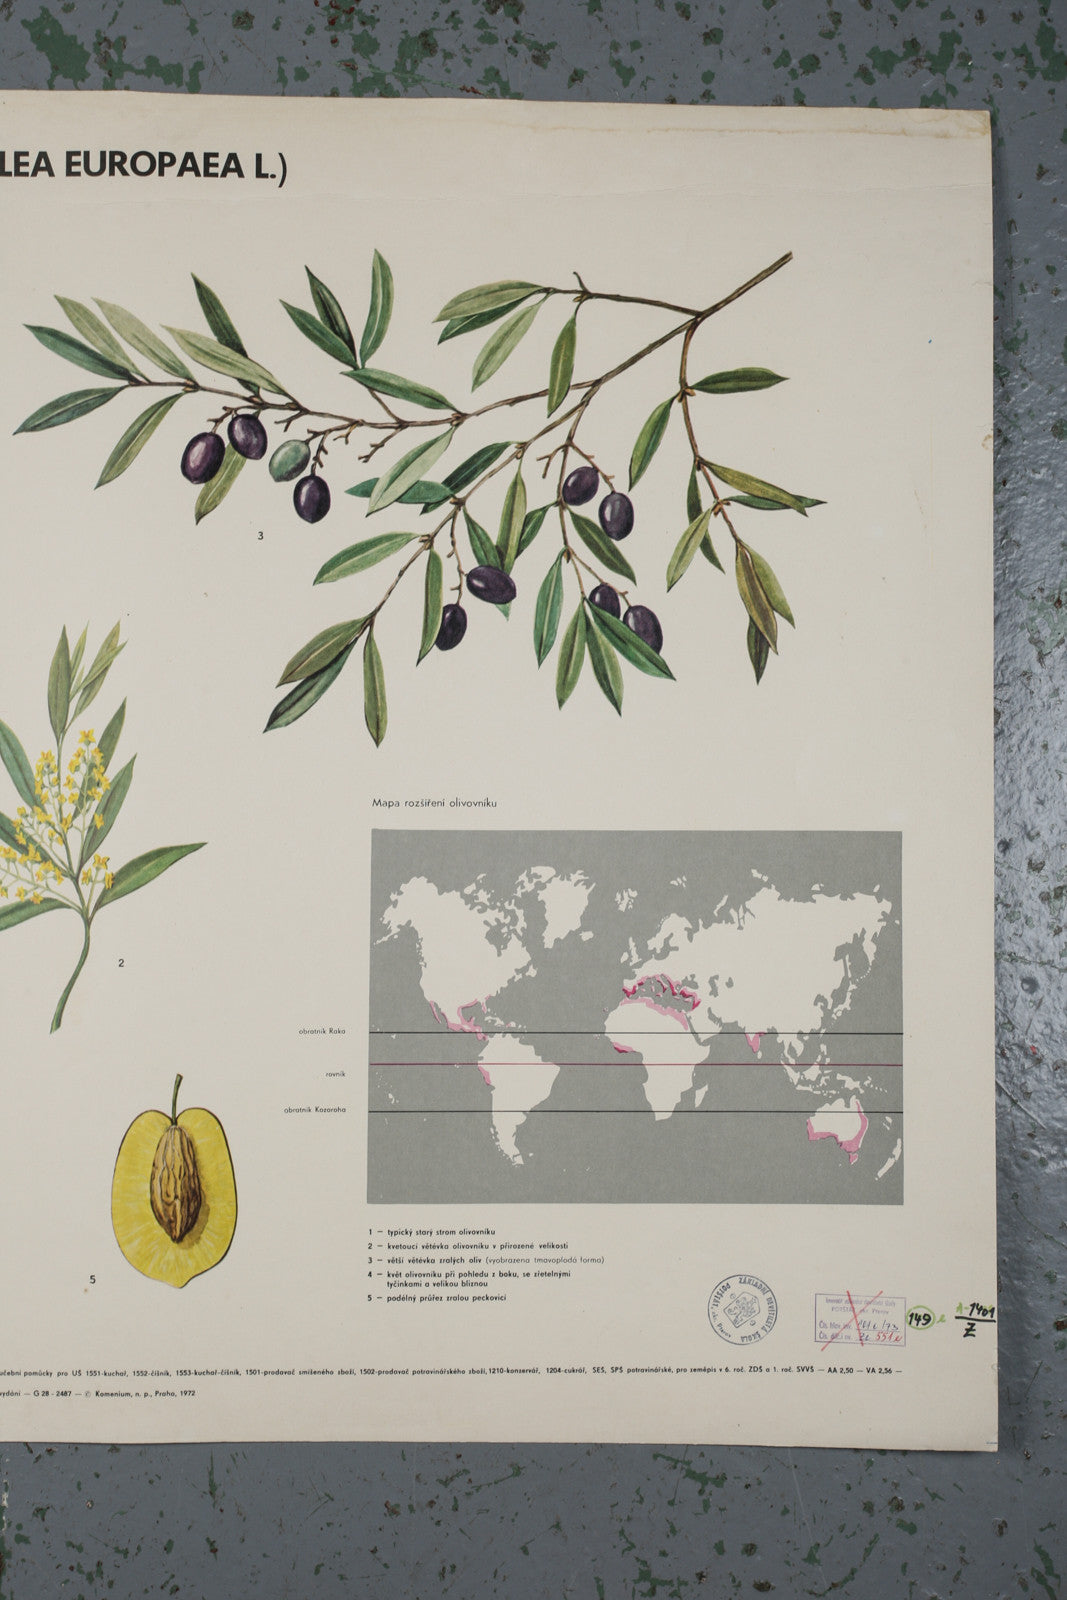 Botanical educational olive poster from 1972